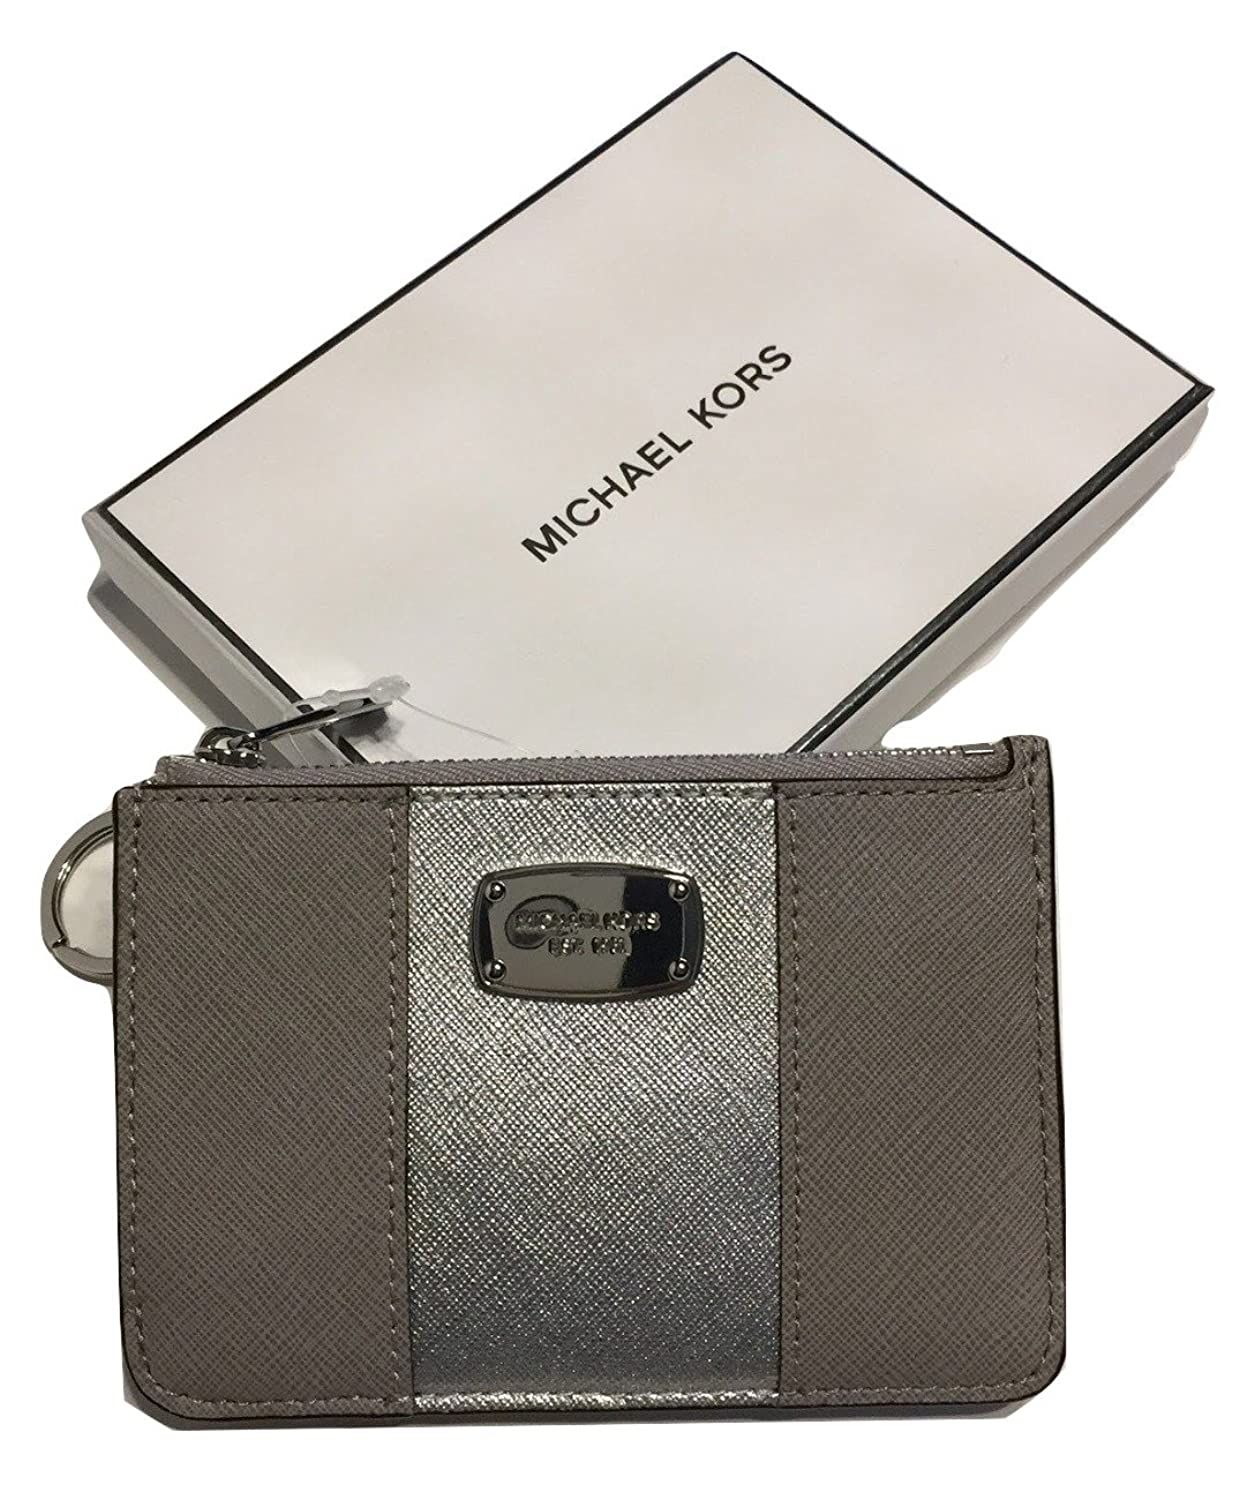 Michael Met Center Stripe SM TZ Coinpouch with ID Pearl Grey/Silver Clutch Wallet